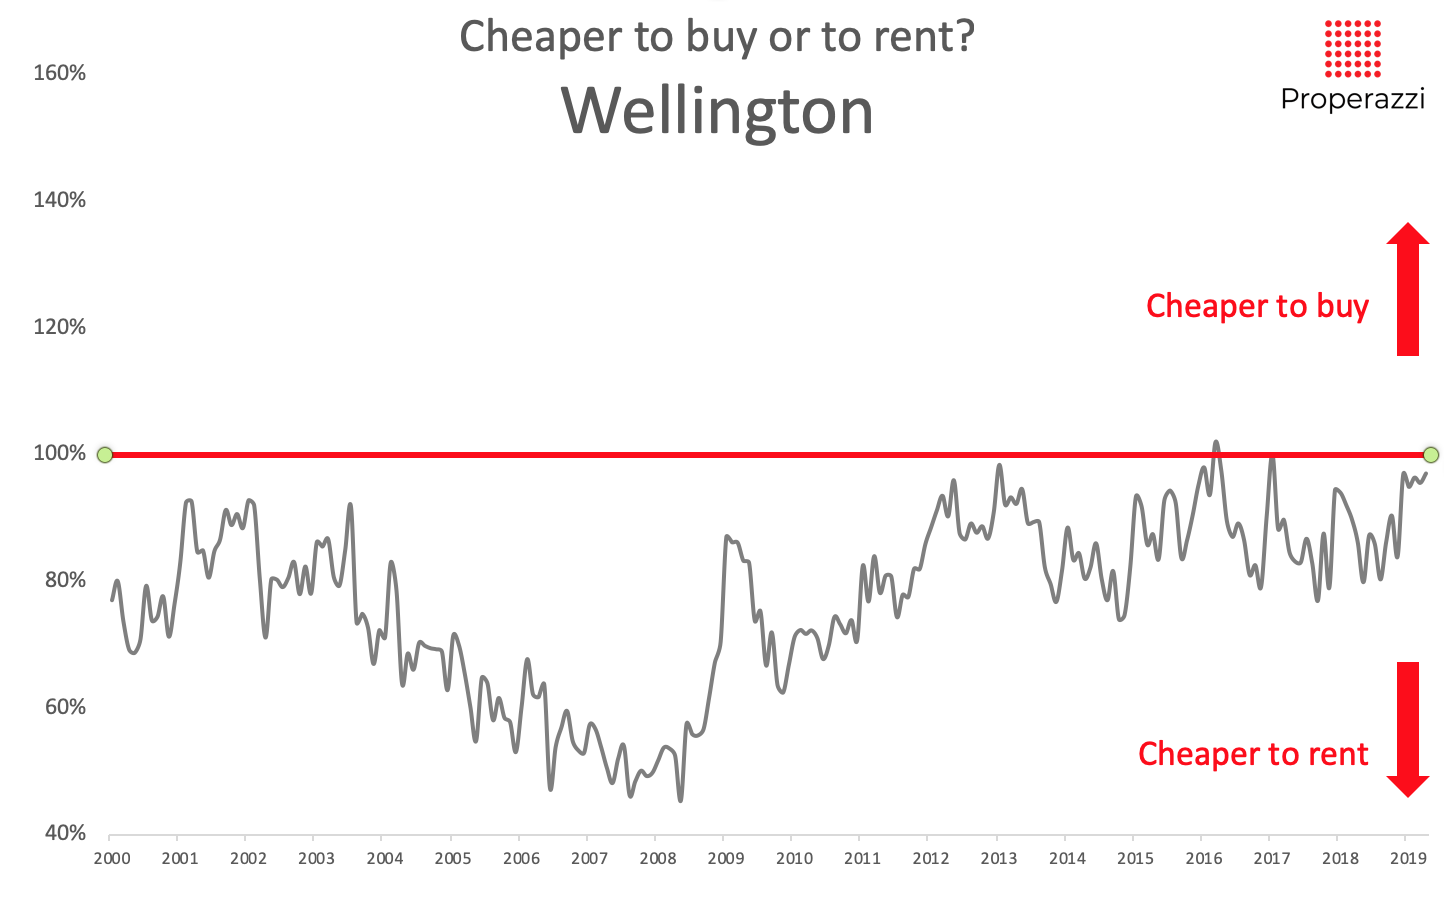 Cheaper to rent or to buy in Wellington May 2019